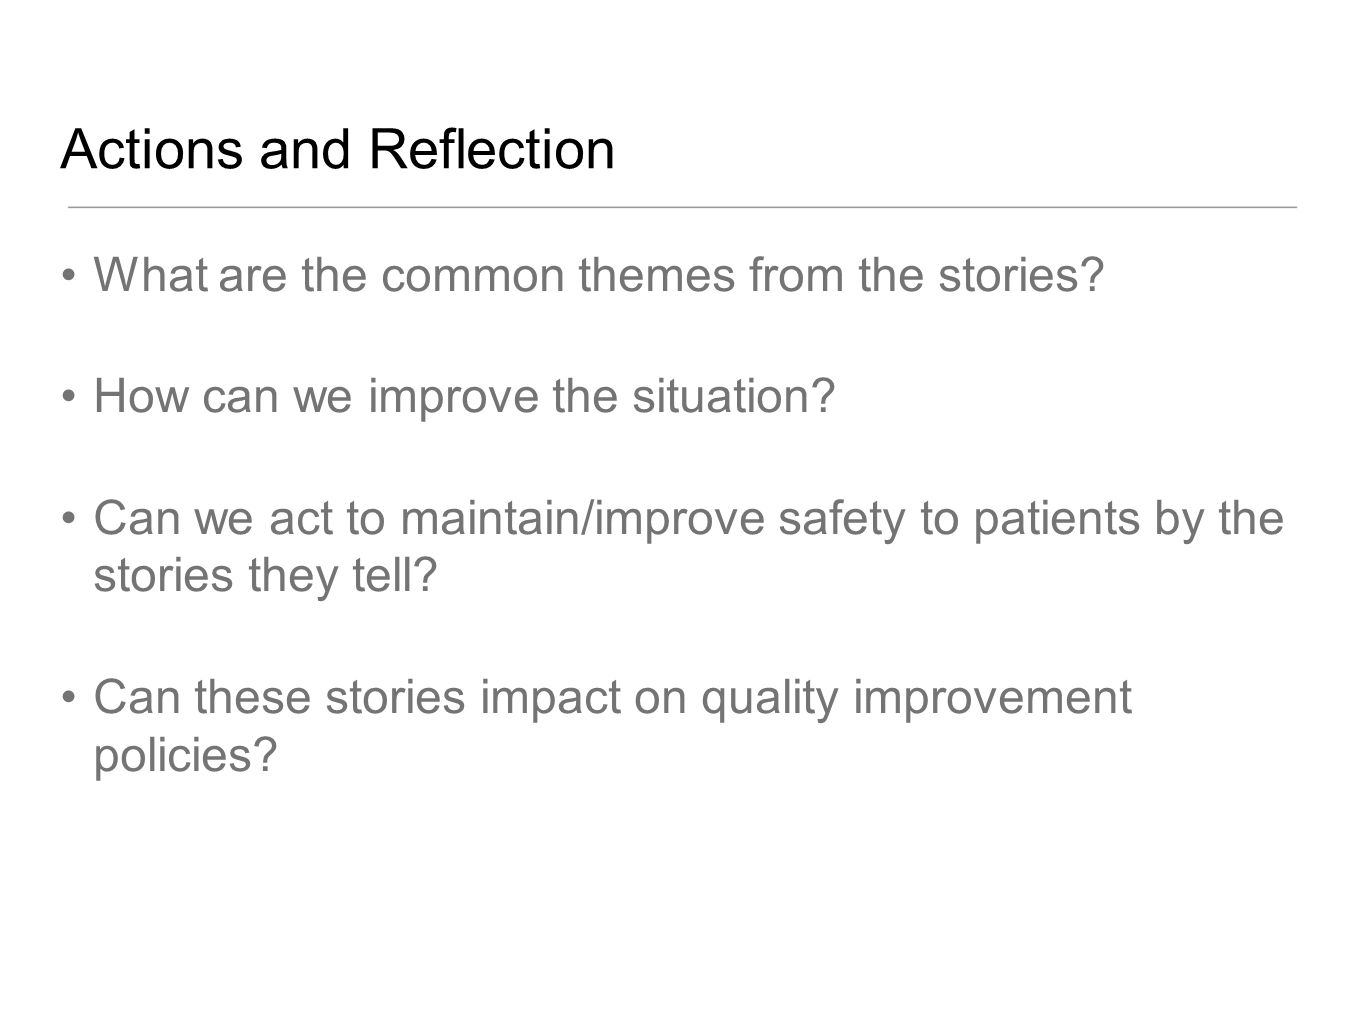 Actions and Reflection